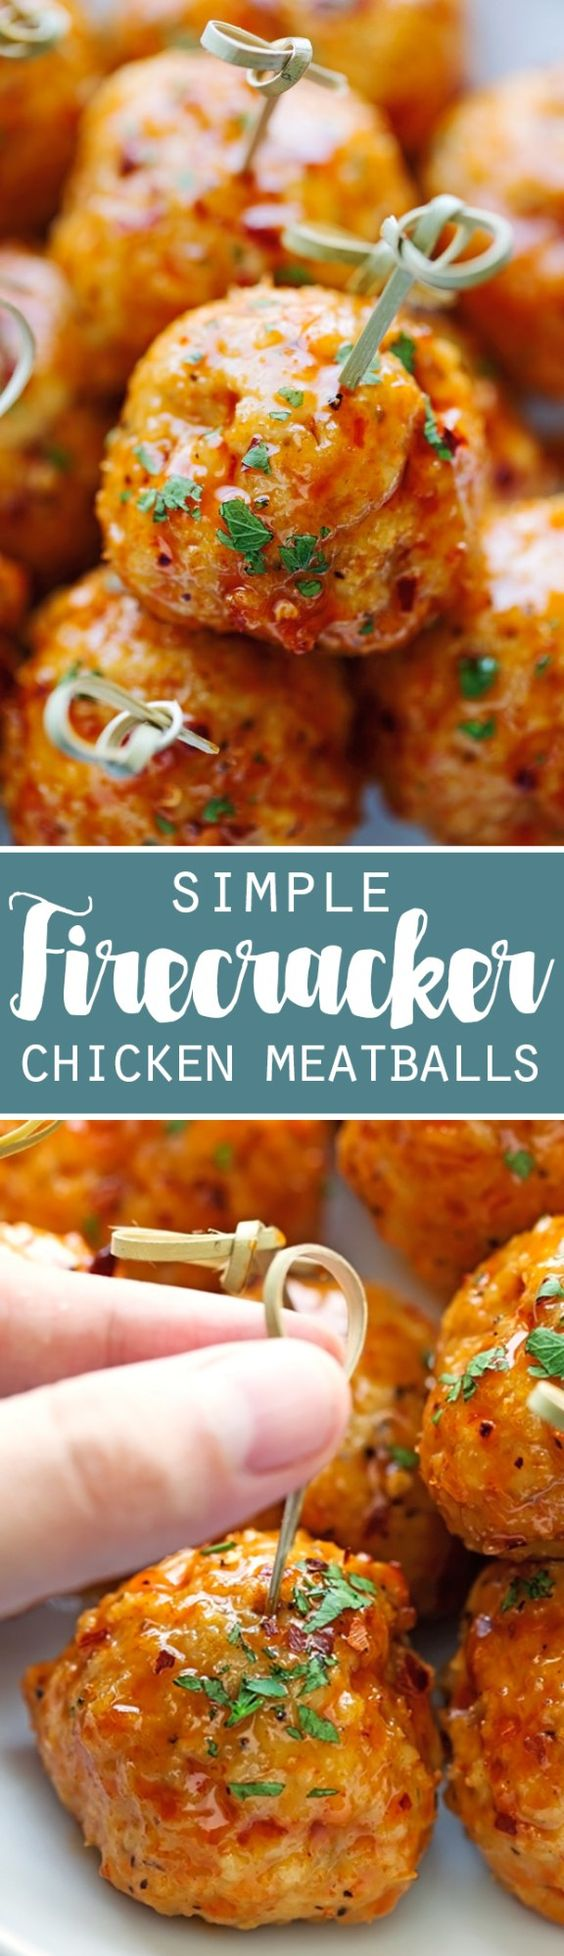 Firecracker Chicken Meatballs - These meatballs are made with chicken and taste like firecracker chicken! Easy to prepare and ready in about 30 minutes! via Little Spice Jar